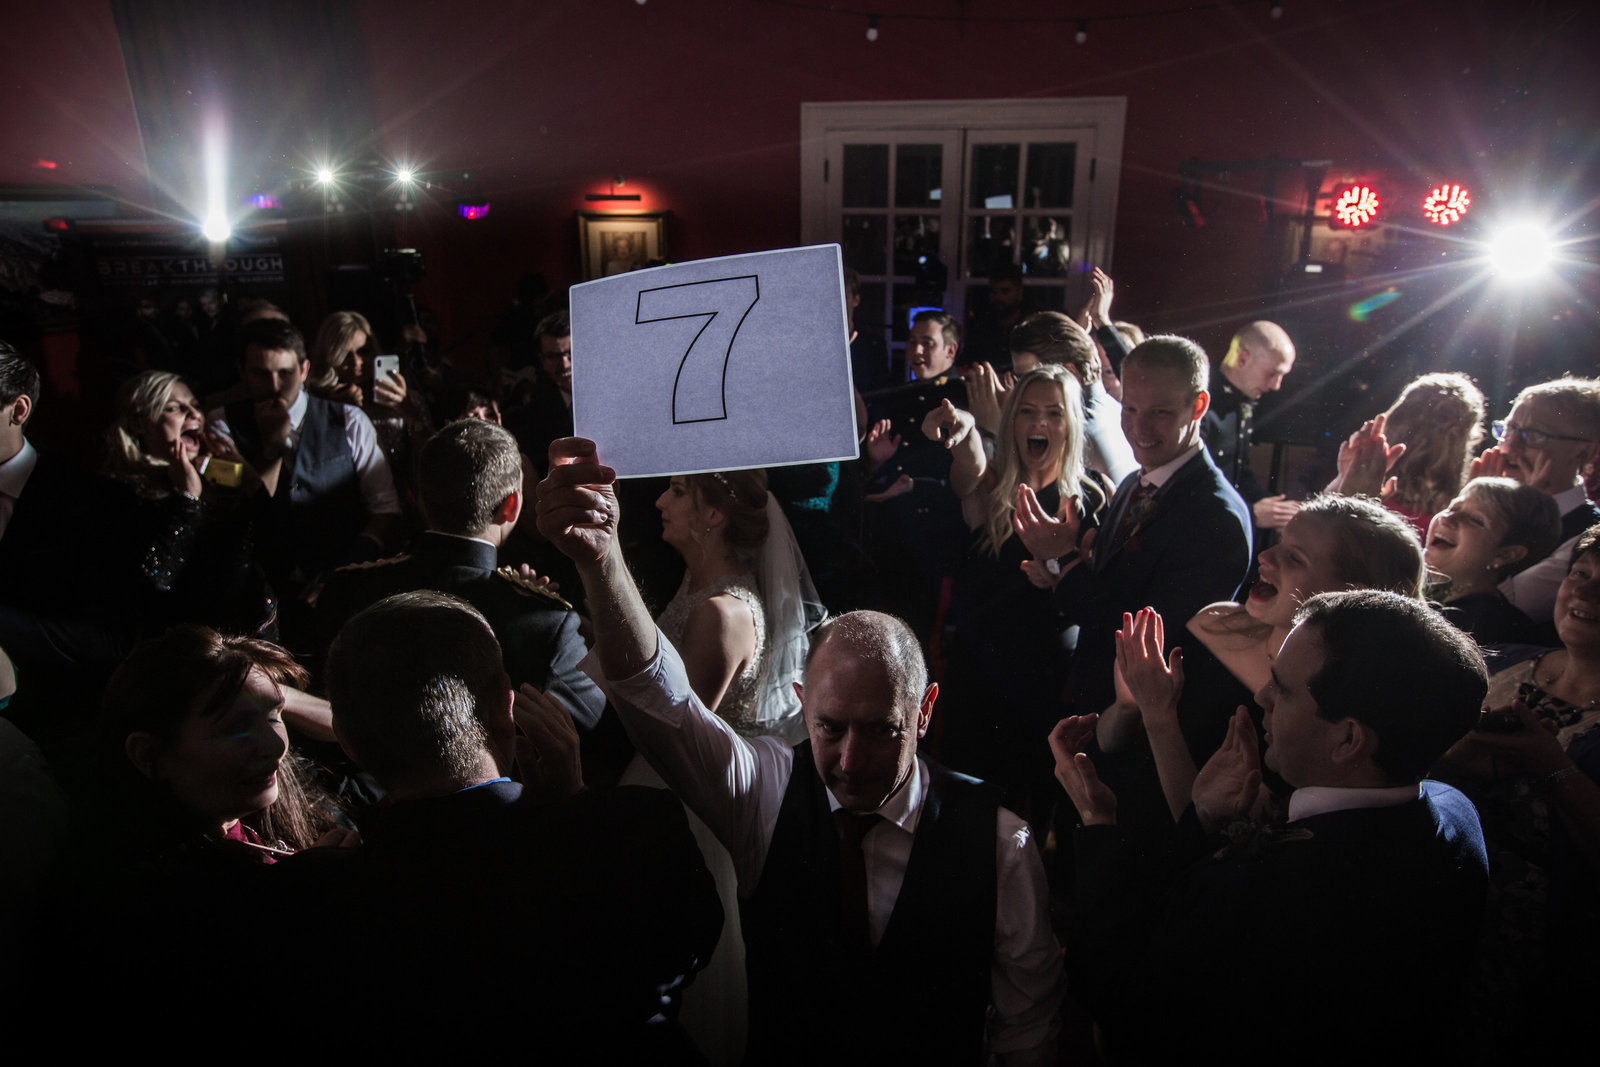 During the dancing at a wedding, the Brides Dad holds up the number 7 on a card in the style of an ice skating judge, the guests all laugh.